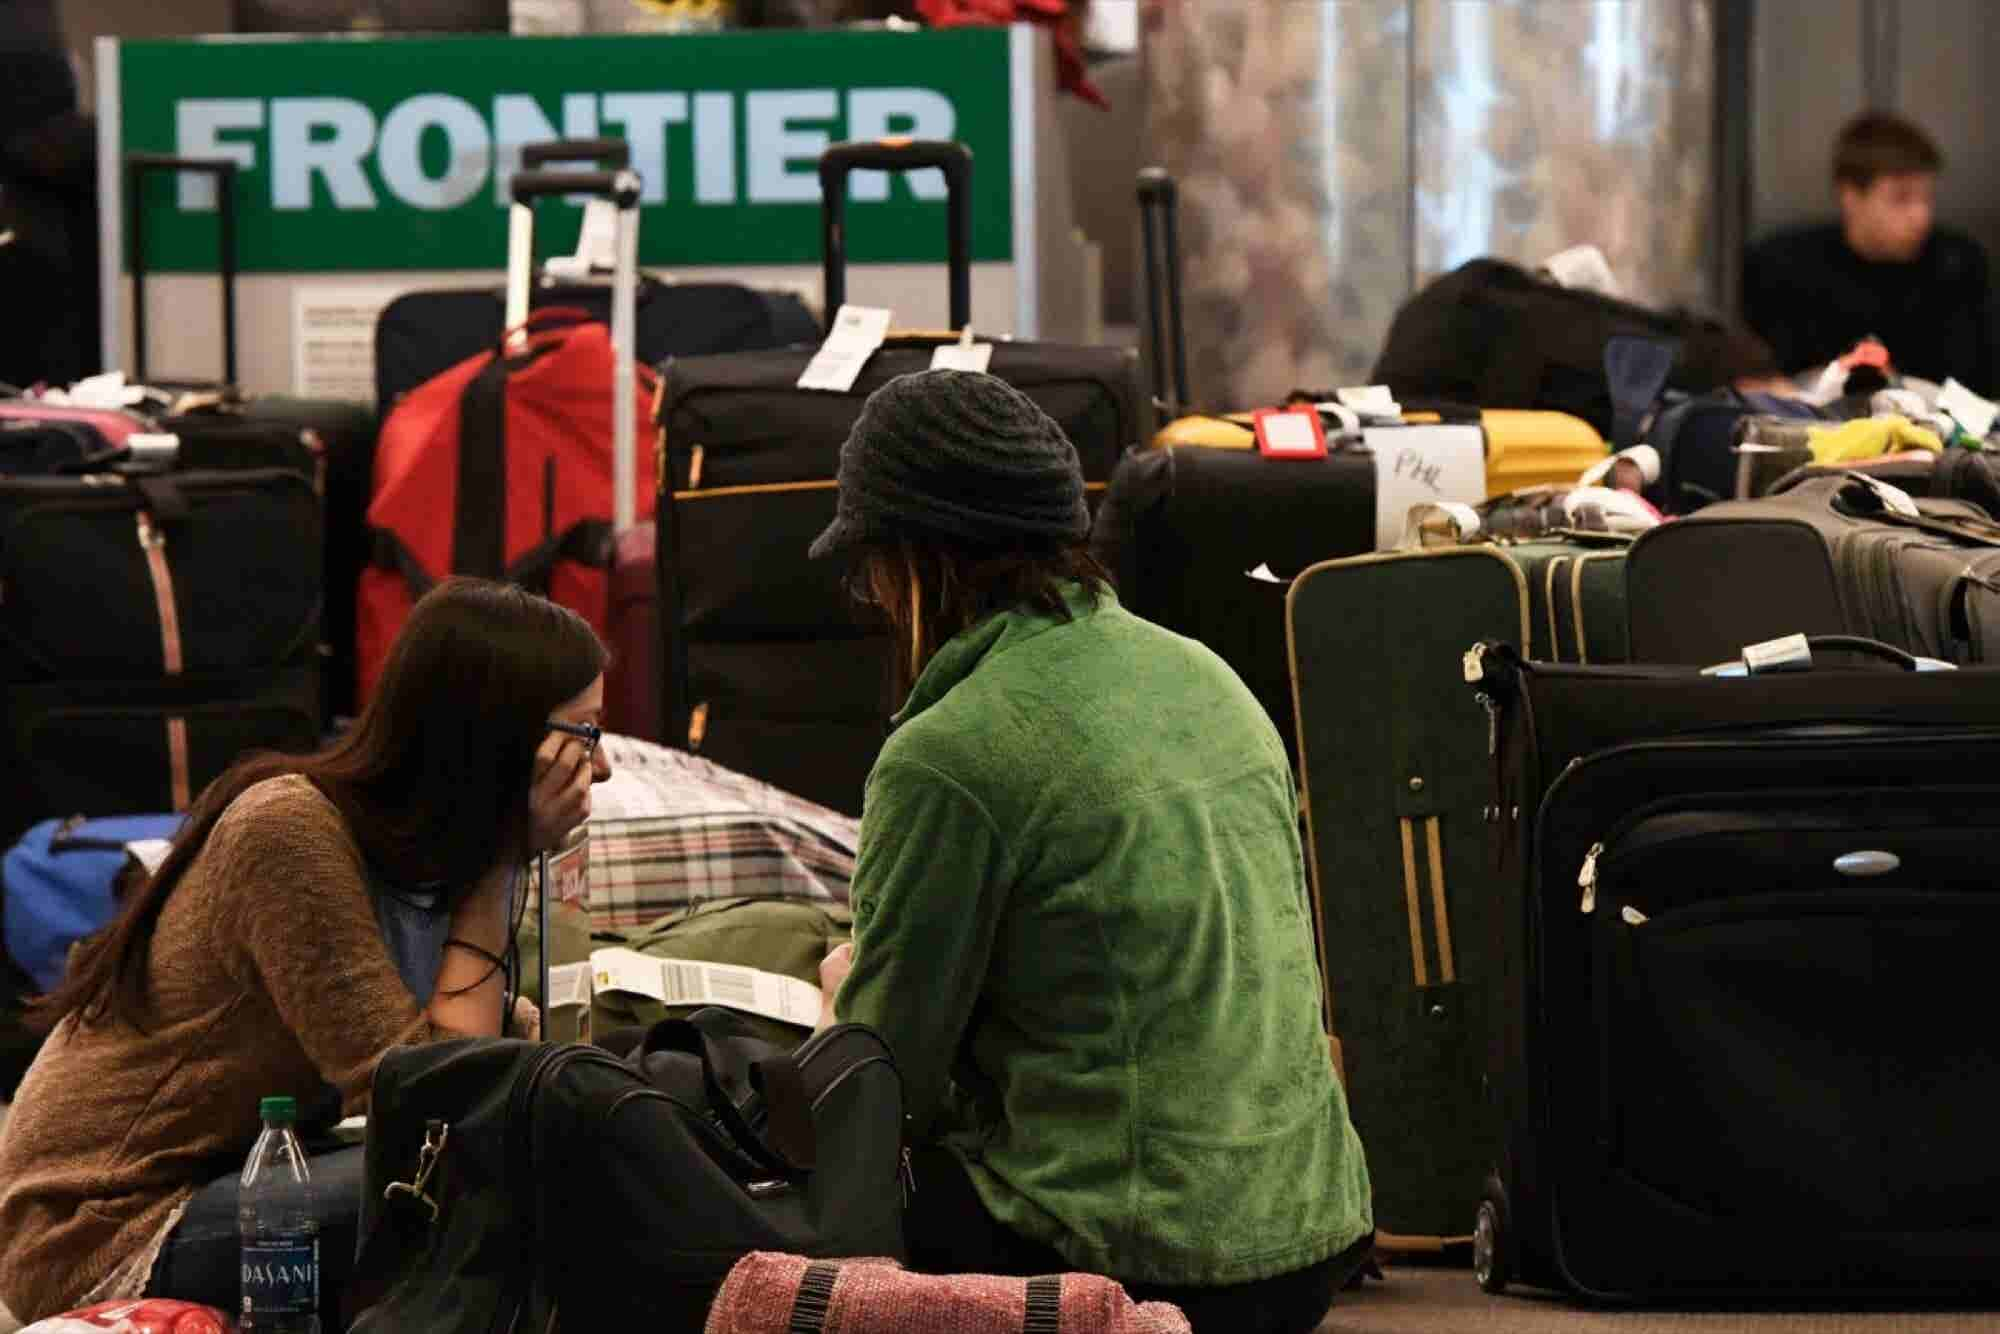 Frontier Airlines Is Learning the Hard Way That Value Is King